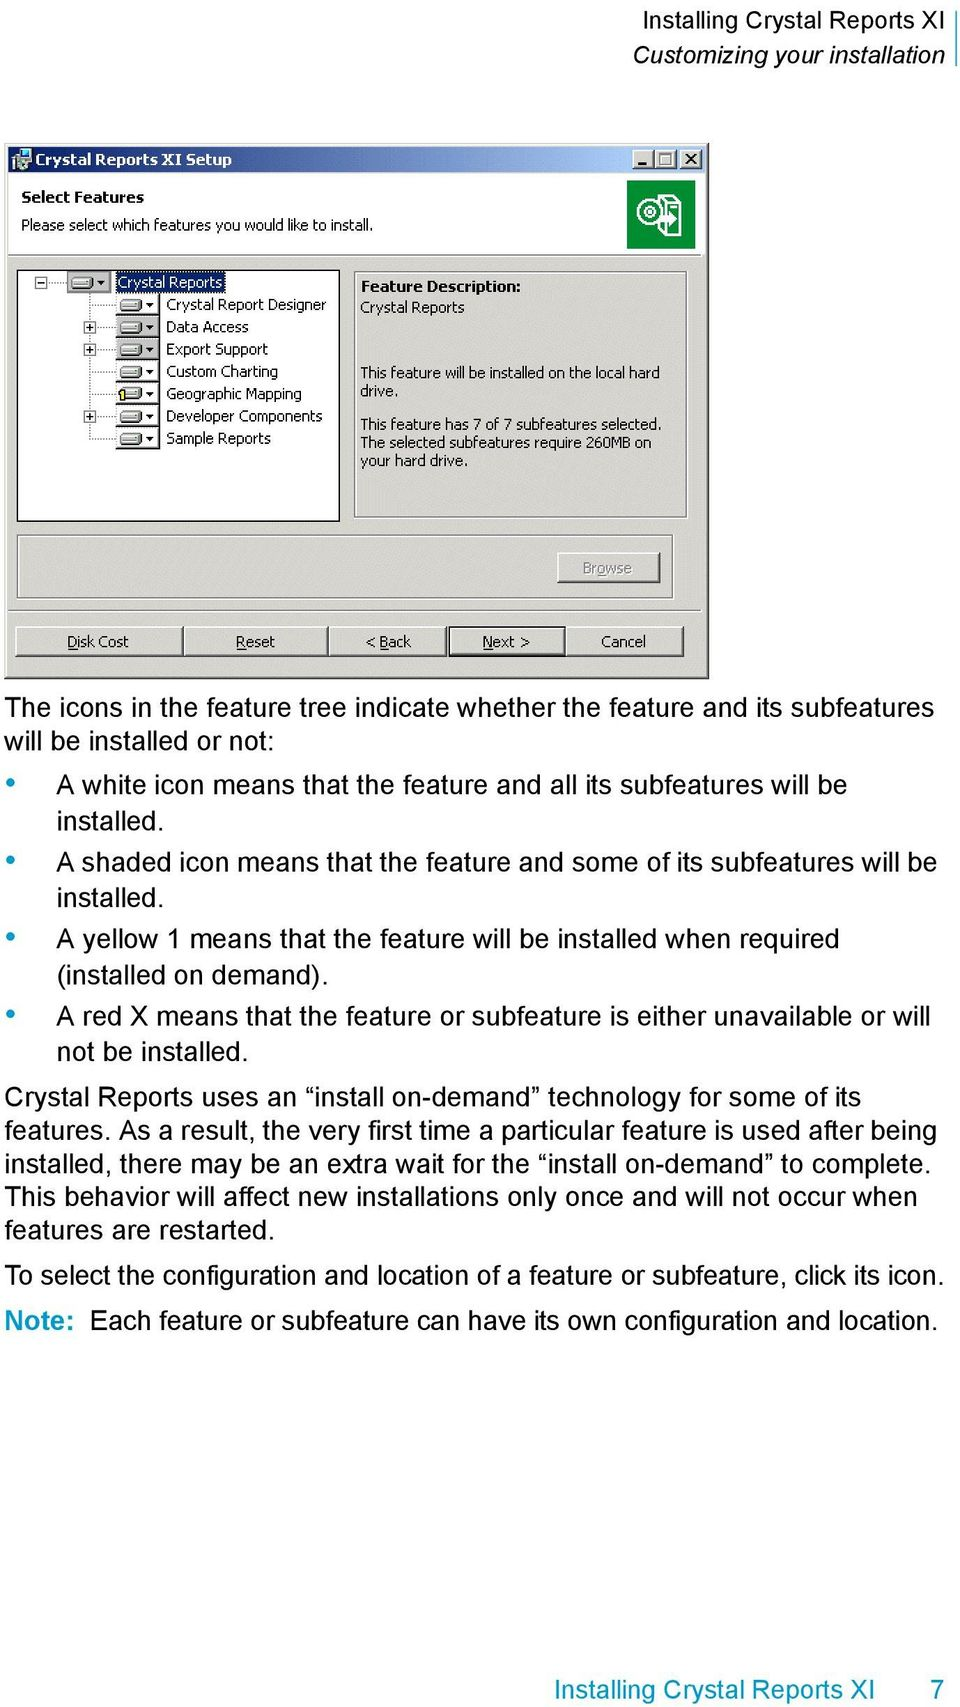 Installing Crystal Reports XI  Installing Crystal Reports XI